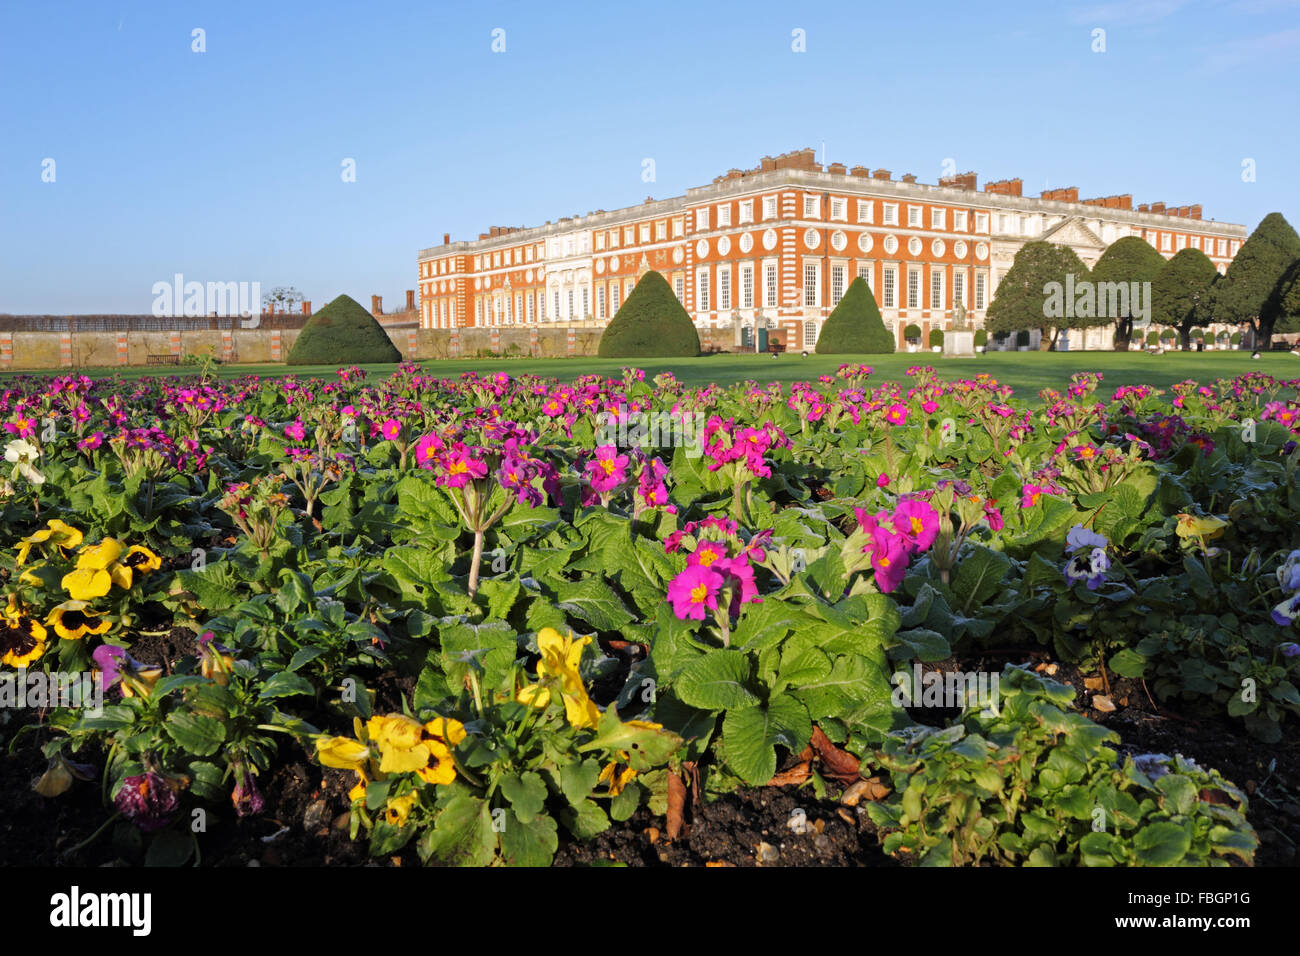 Hampton Court, London, UK. 16th January 2016. A colourful display of purple primulas and yellow pansies planted - Stock Image